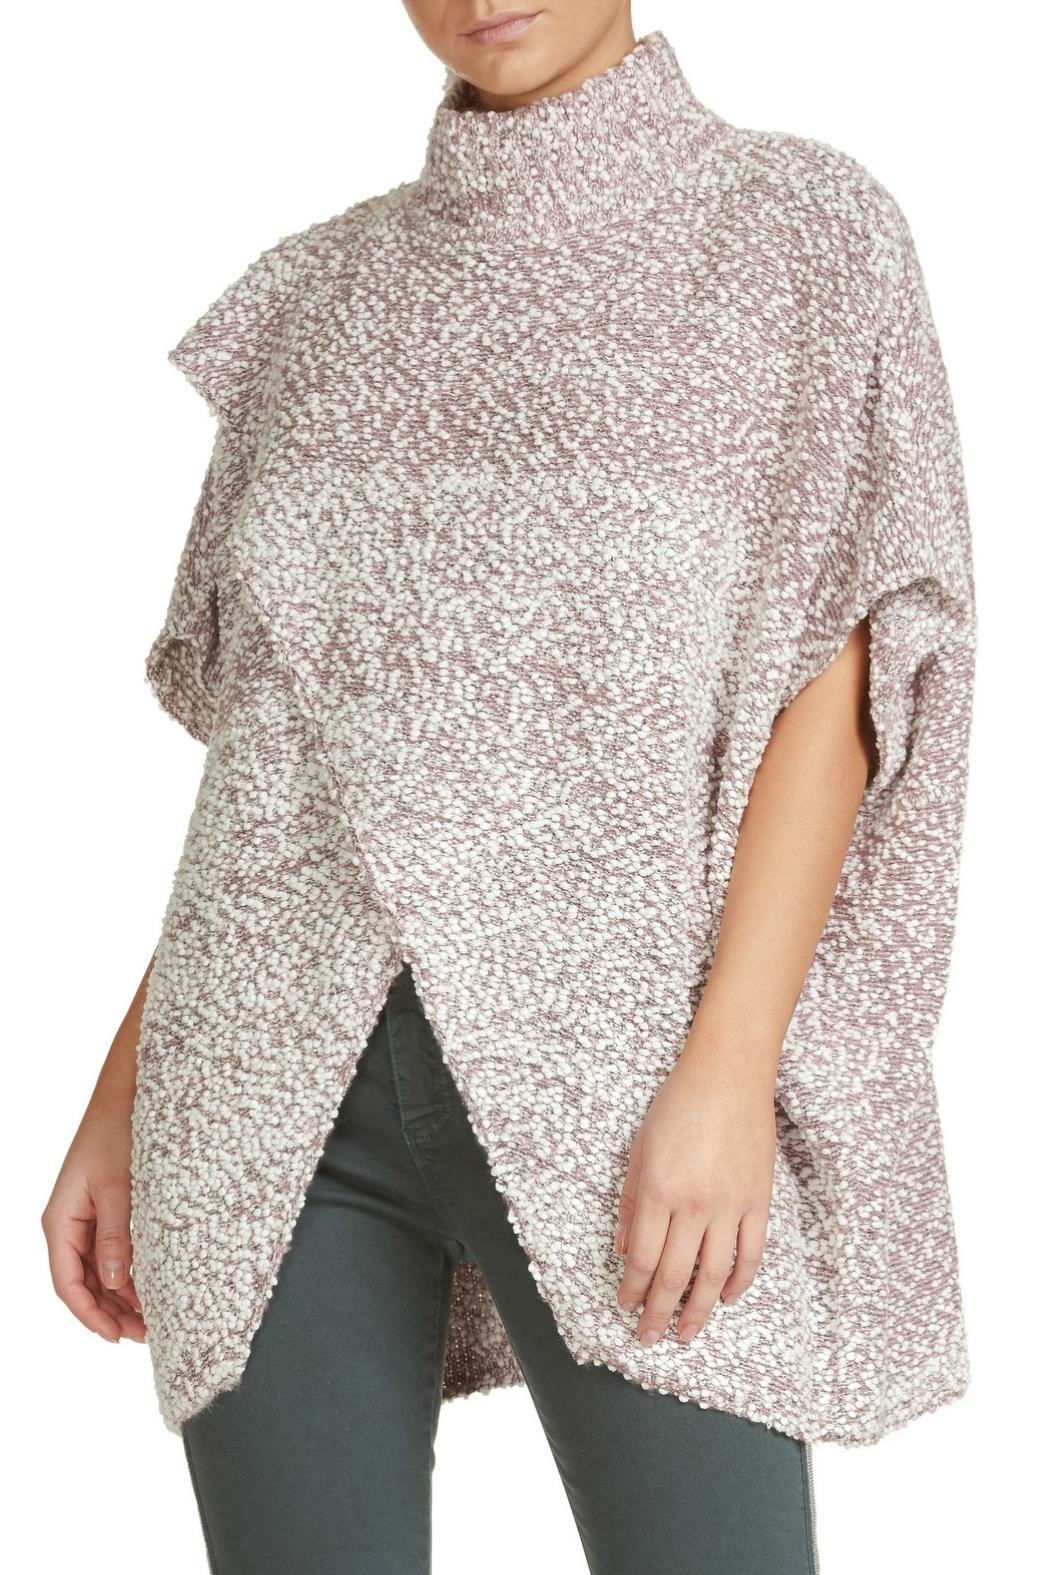 Elan Sweater With Cross-Front - Main Image